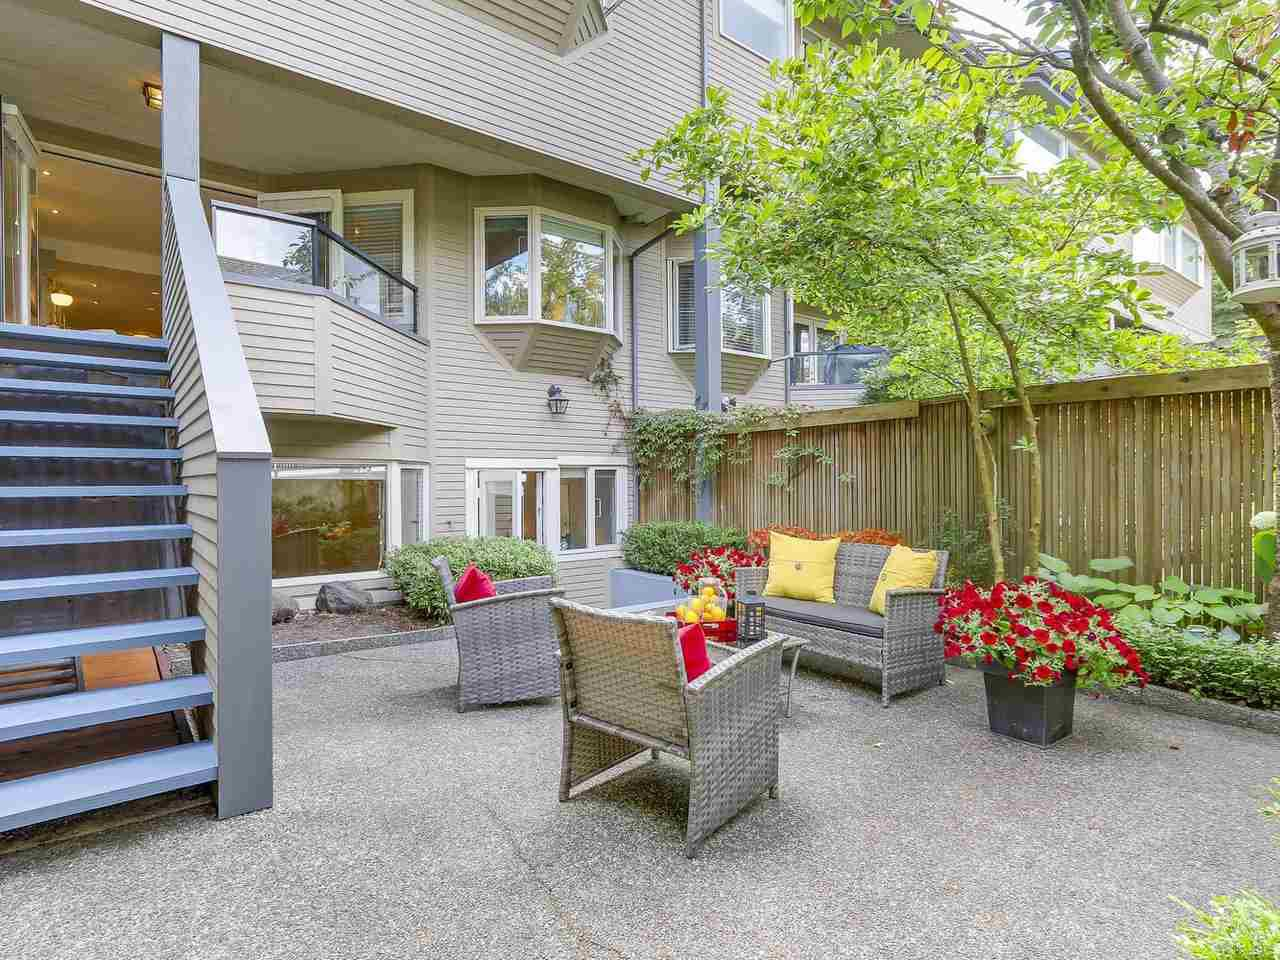 Main Photo: 2411 W 1ST AVENUE in Vancouver: Kitsilano Townhouse for sale (Vancouver West)  : MLS®# R2191405